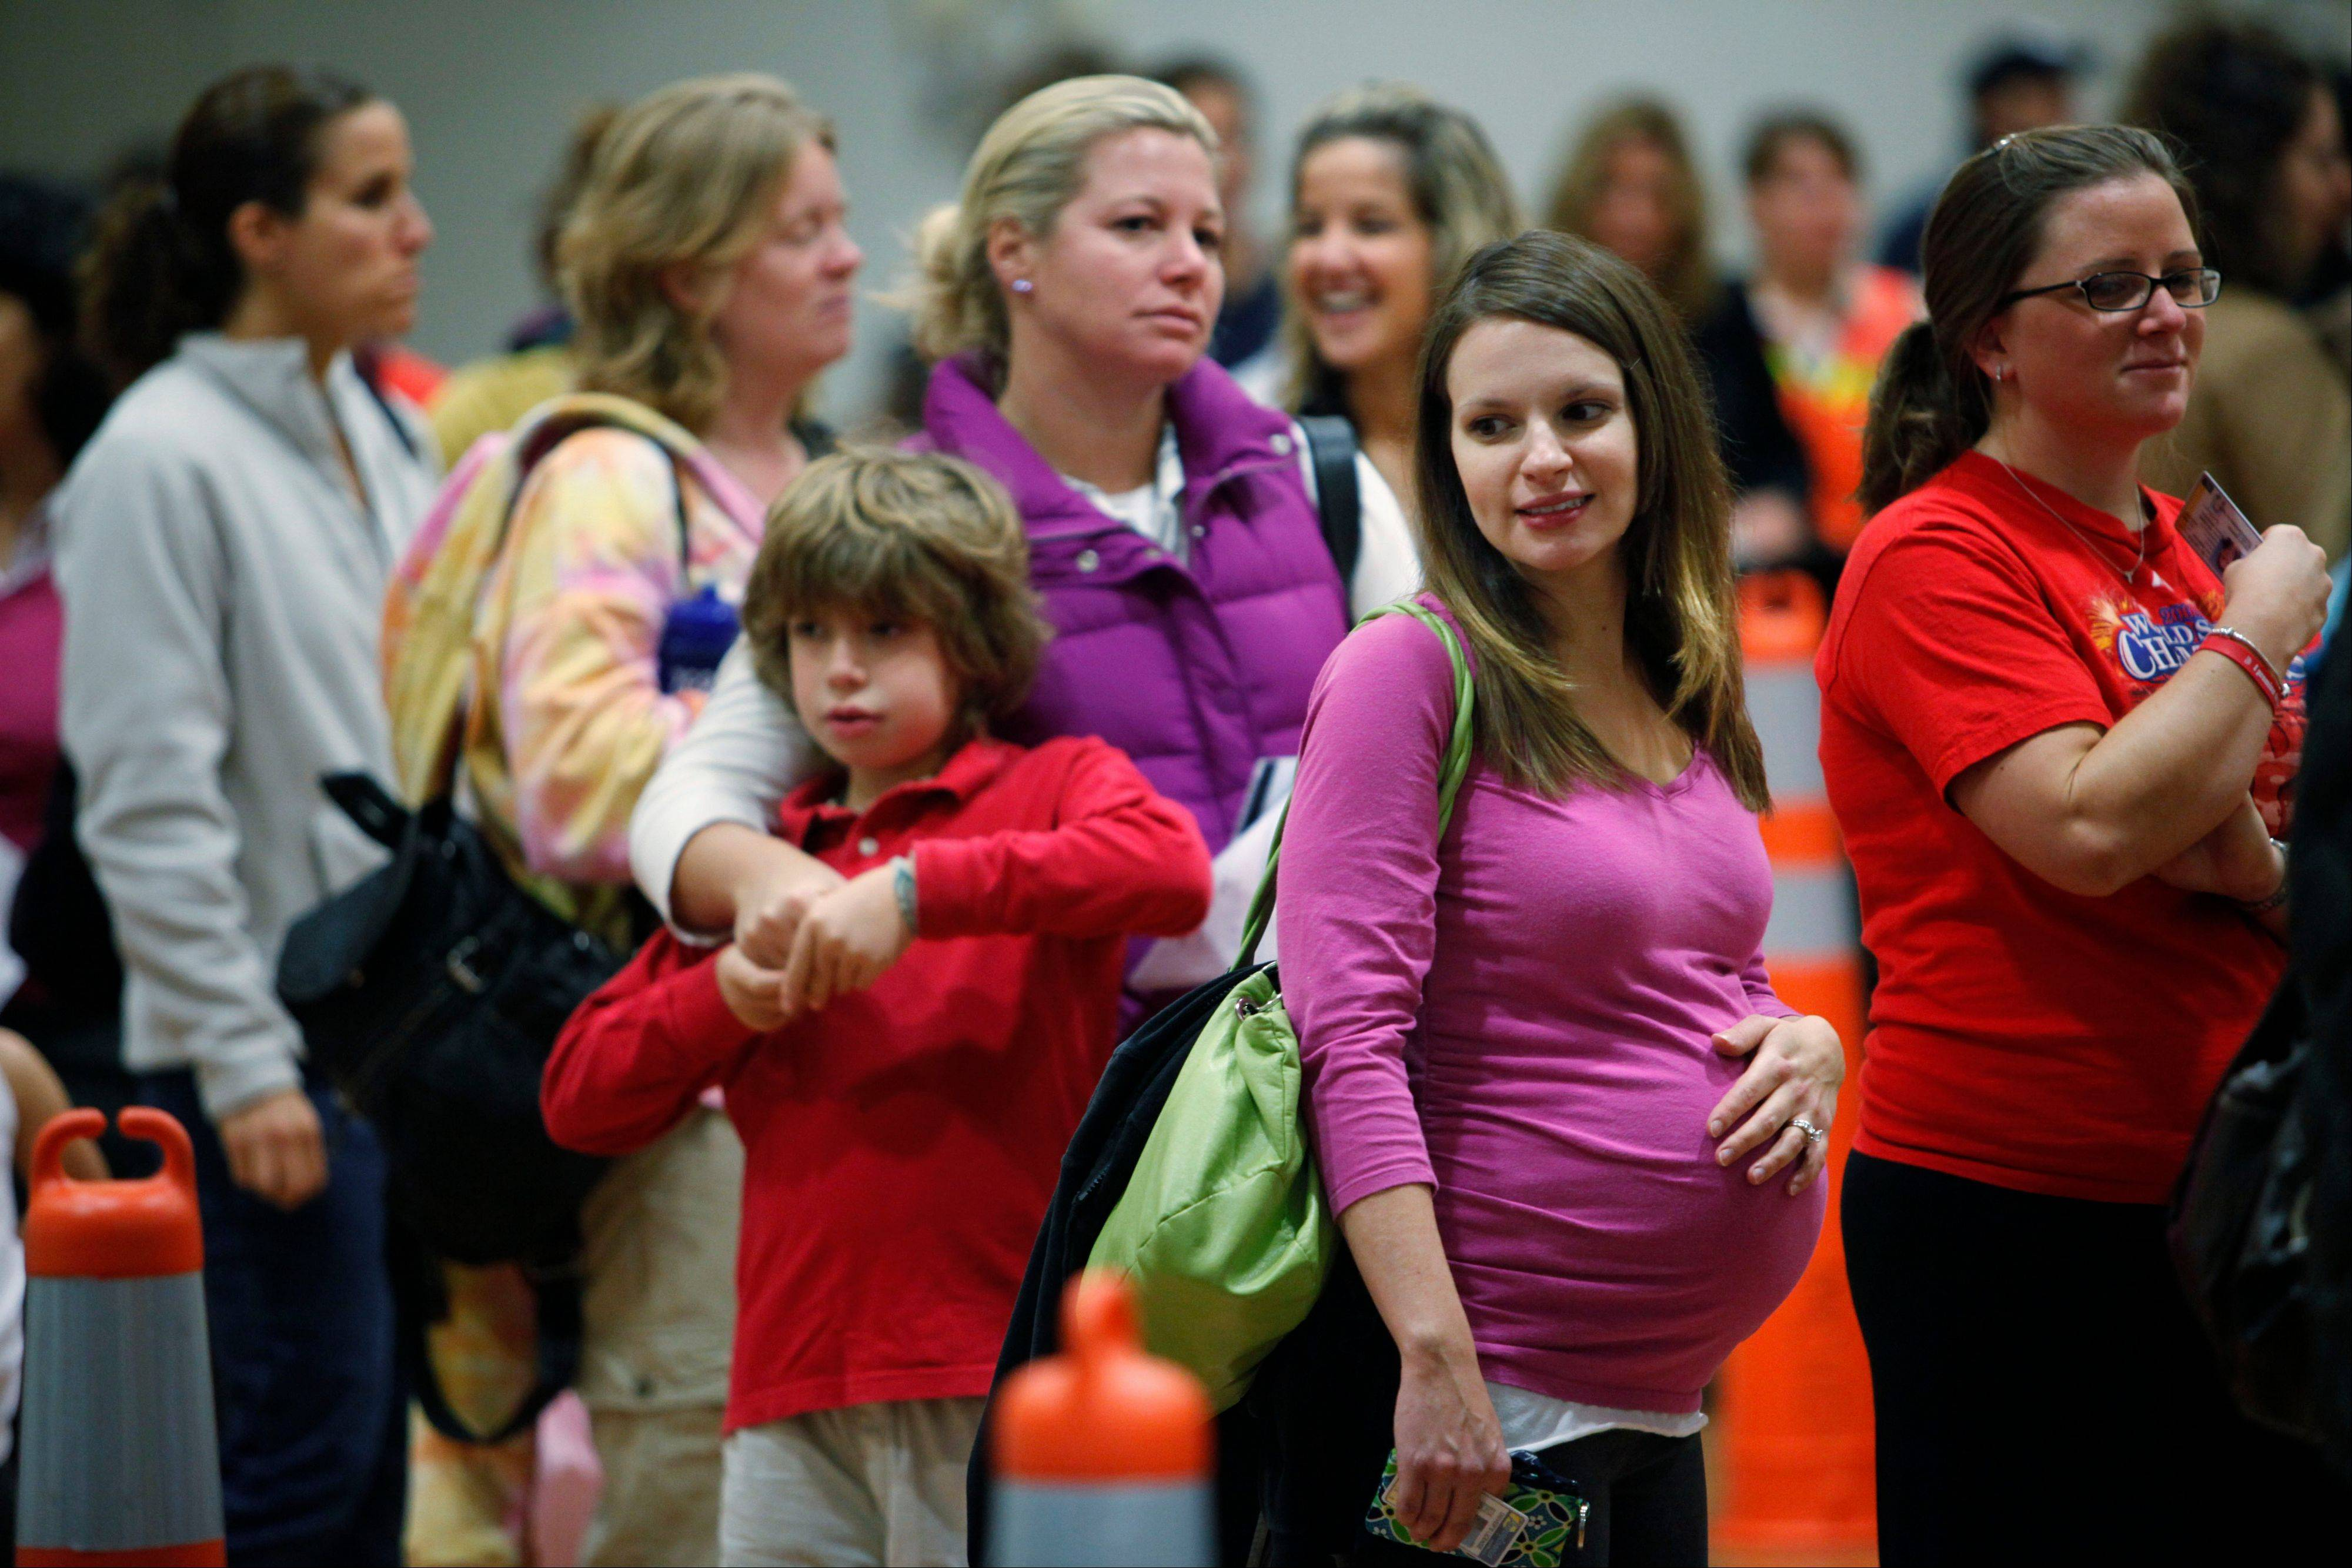 Associated Press/Thursday, Oct. 29, 2009Nicole Andreacchio, second right, who is seven months pregnant, waits in line to receive the swine flu vaccine from the Montgomery County Health Department at Congregation Beth Or in Maple Glen, Pa.